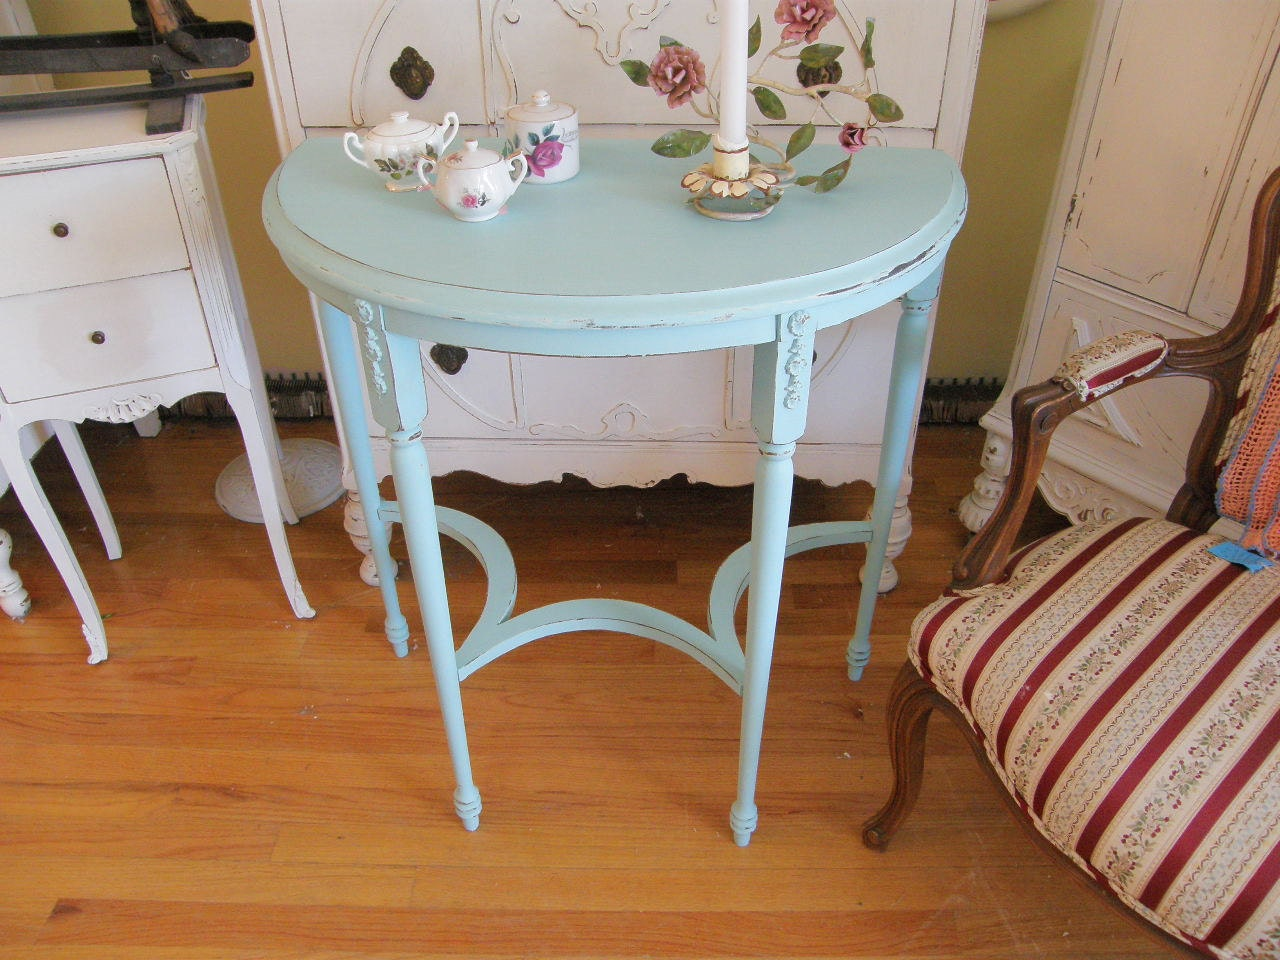 Foyer Table Etsy : Antique table shabby chic aqua blue entry foyer distressed